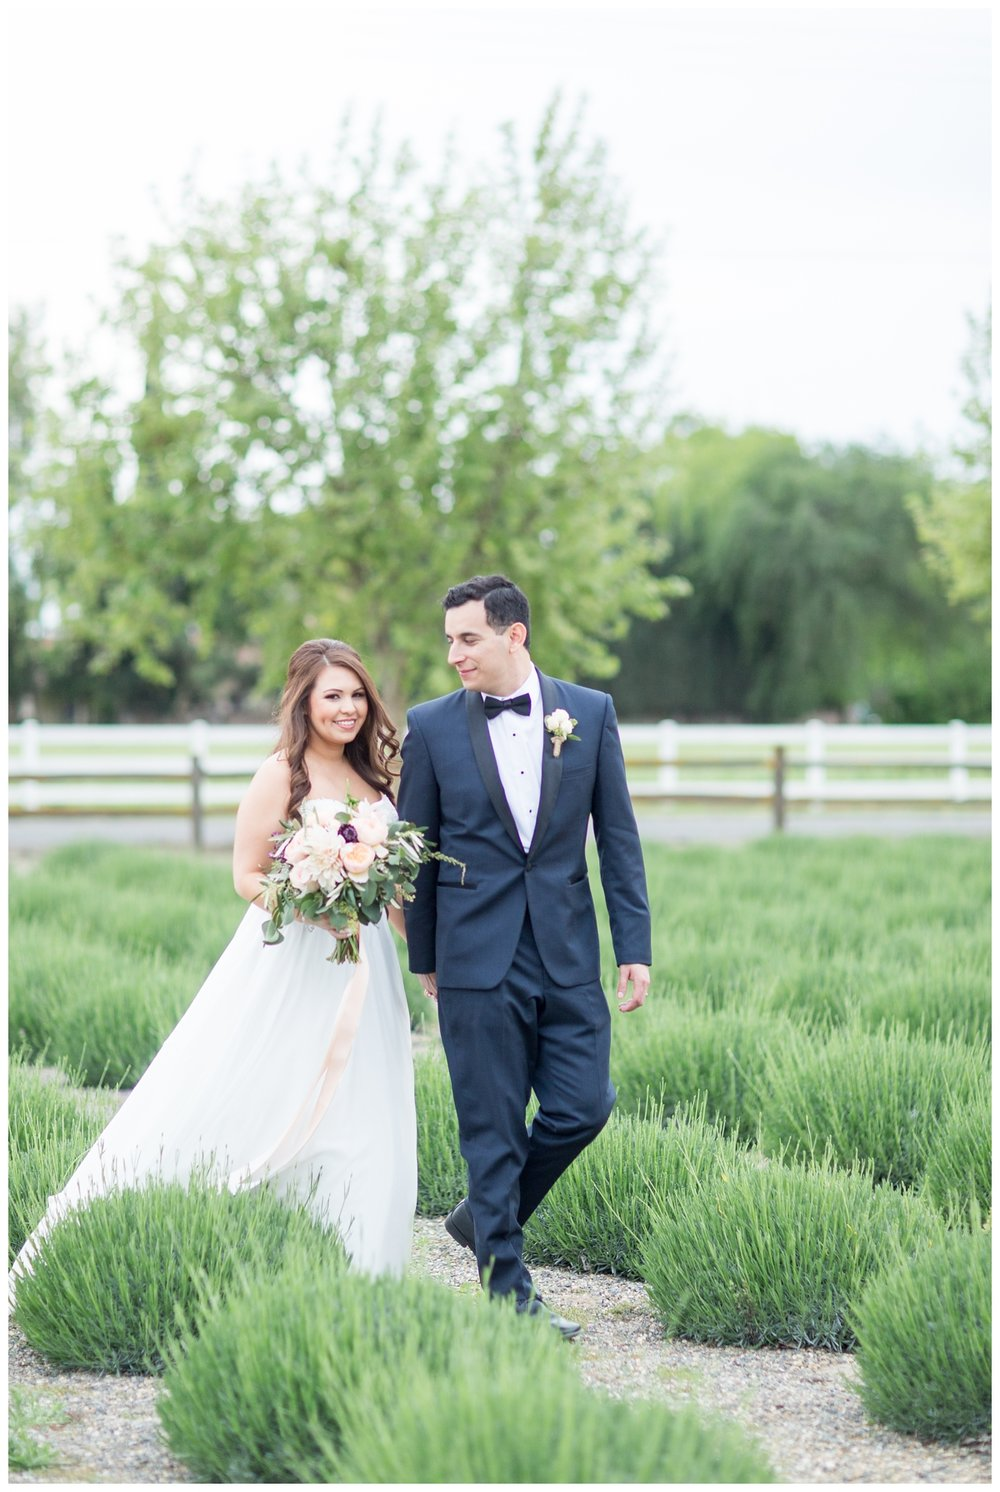 Pageo-Lavender-Farms-Wedding-Photos_4764.jpg